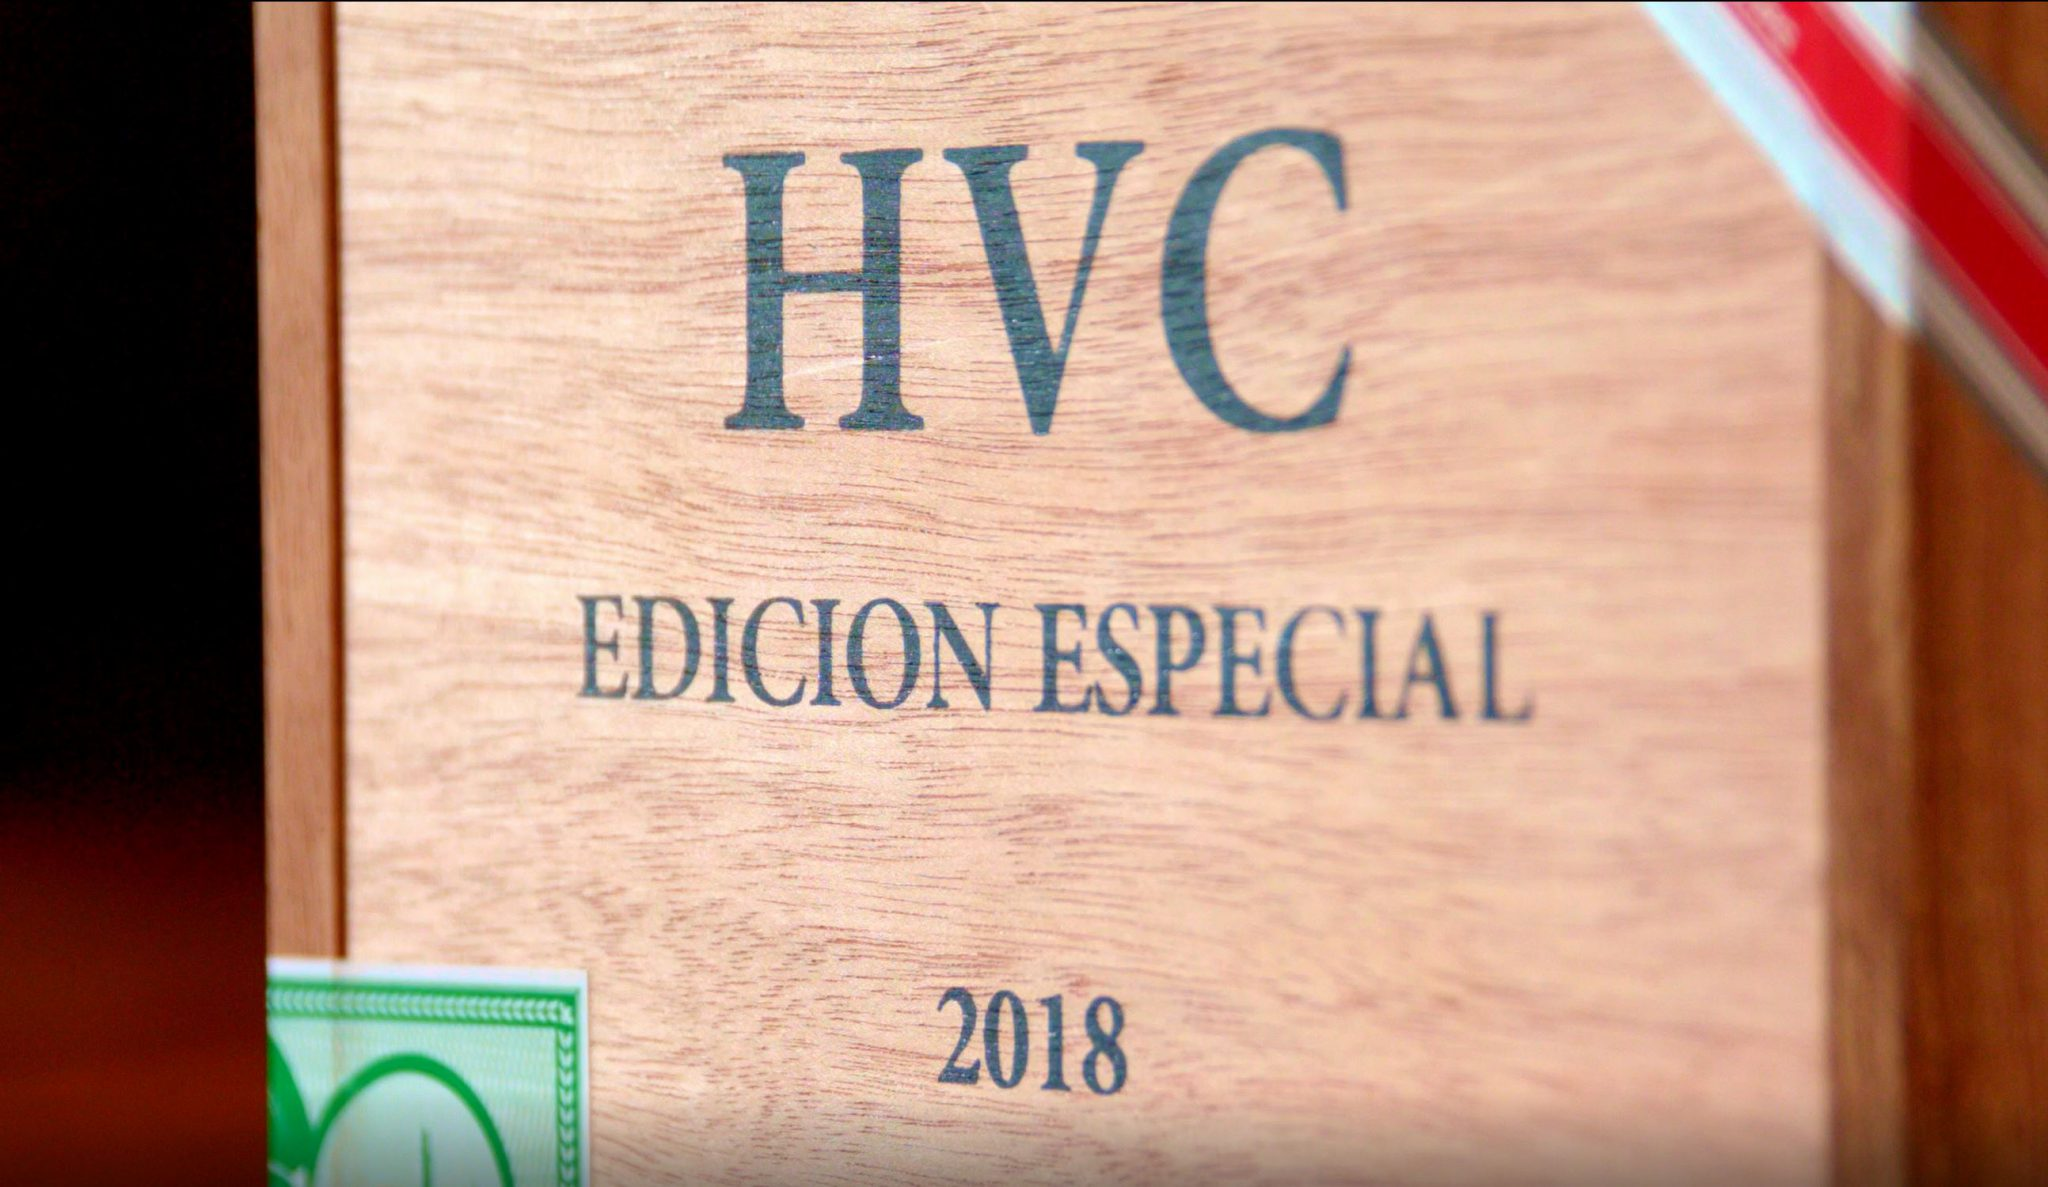 HVC edicion especial 2018 cigar review corona box of cigars image